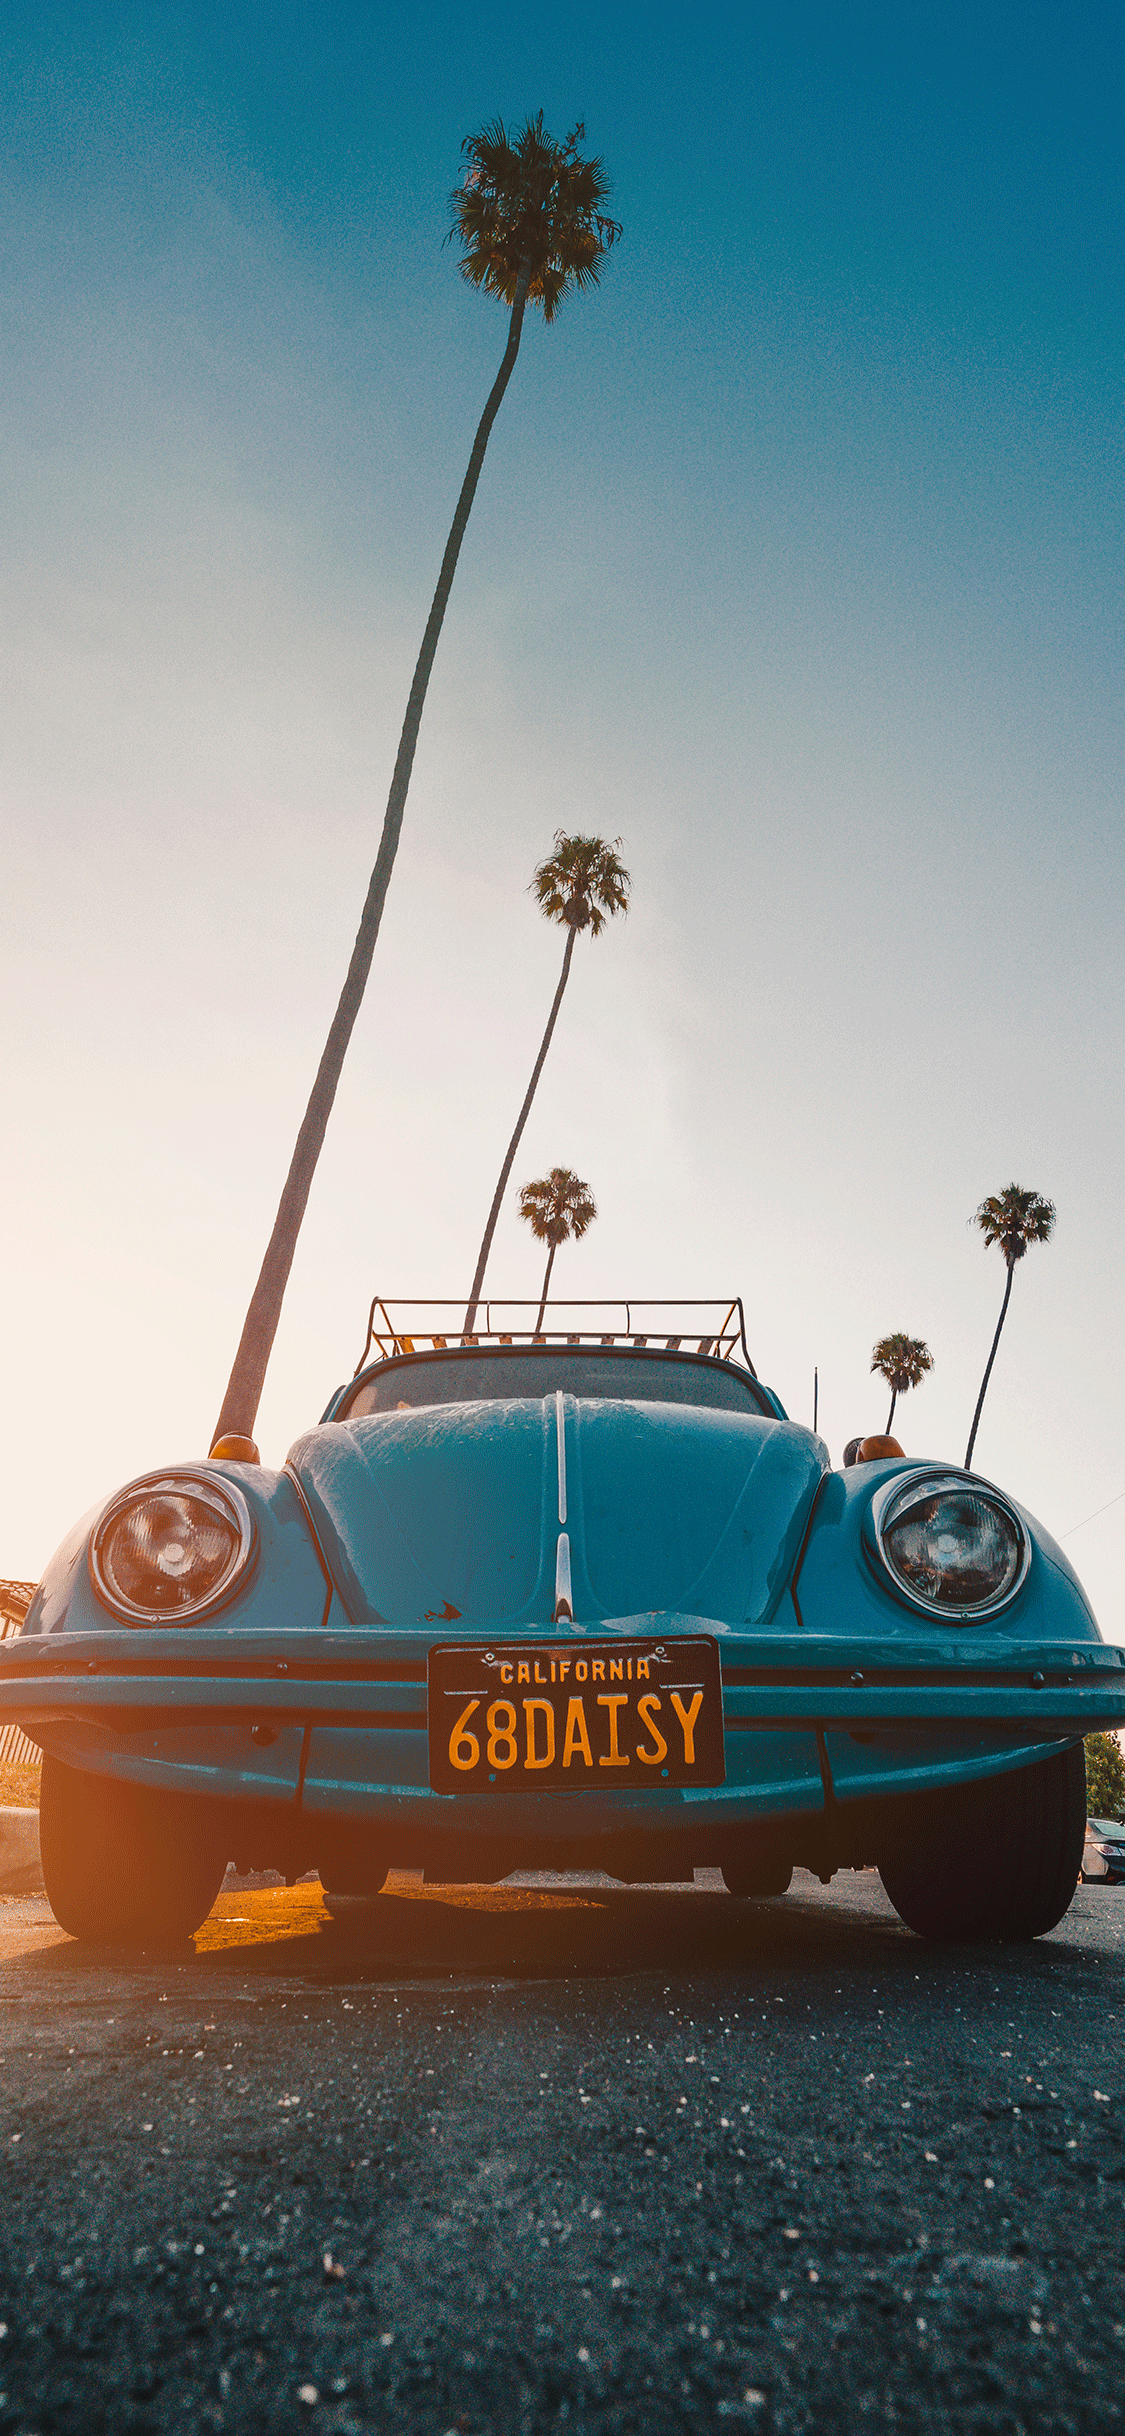 iPhone wallpaper car vintage volkswagen Fonds d'écran iPhone du 08/10/2018